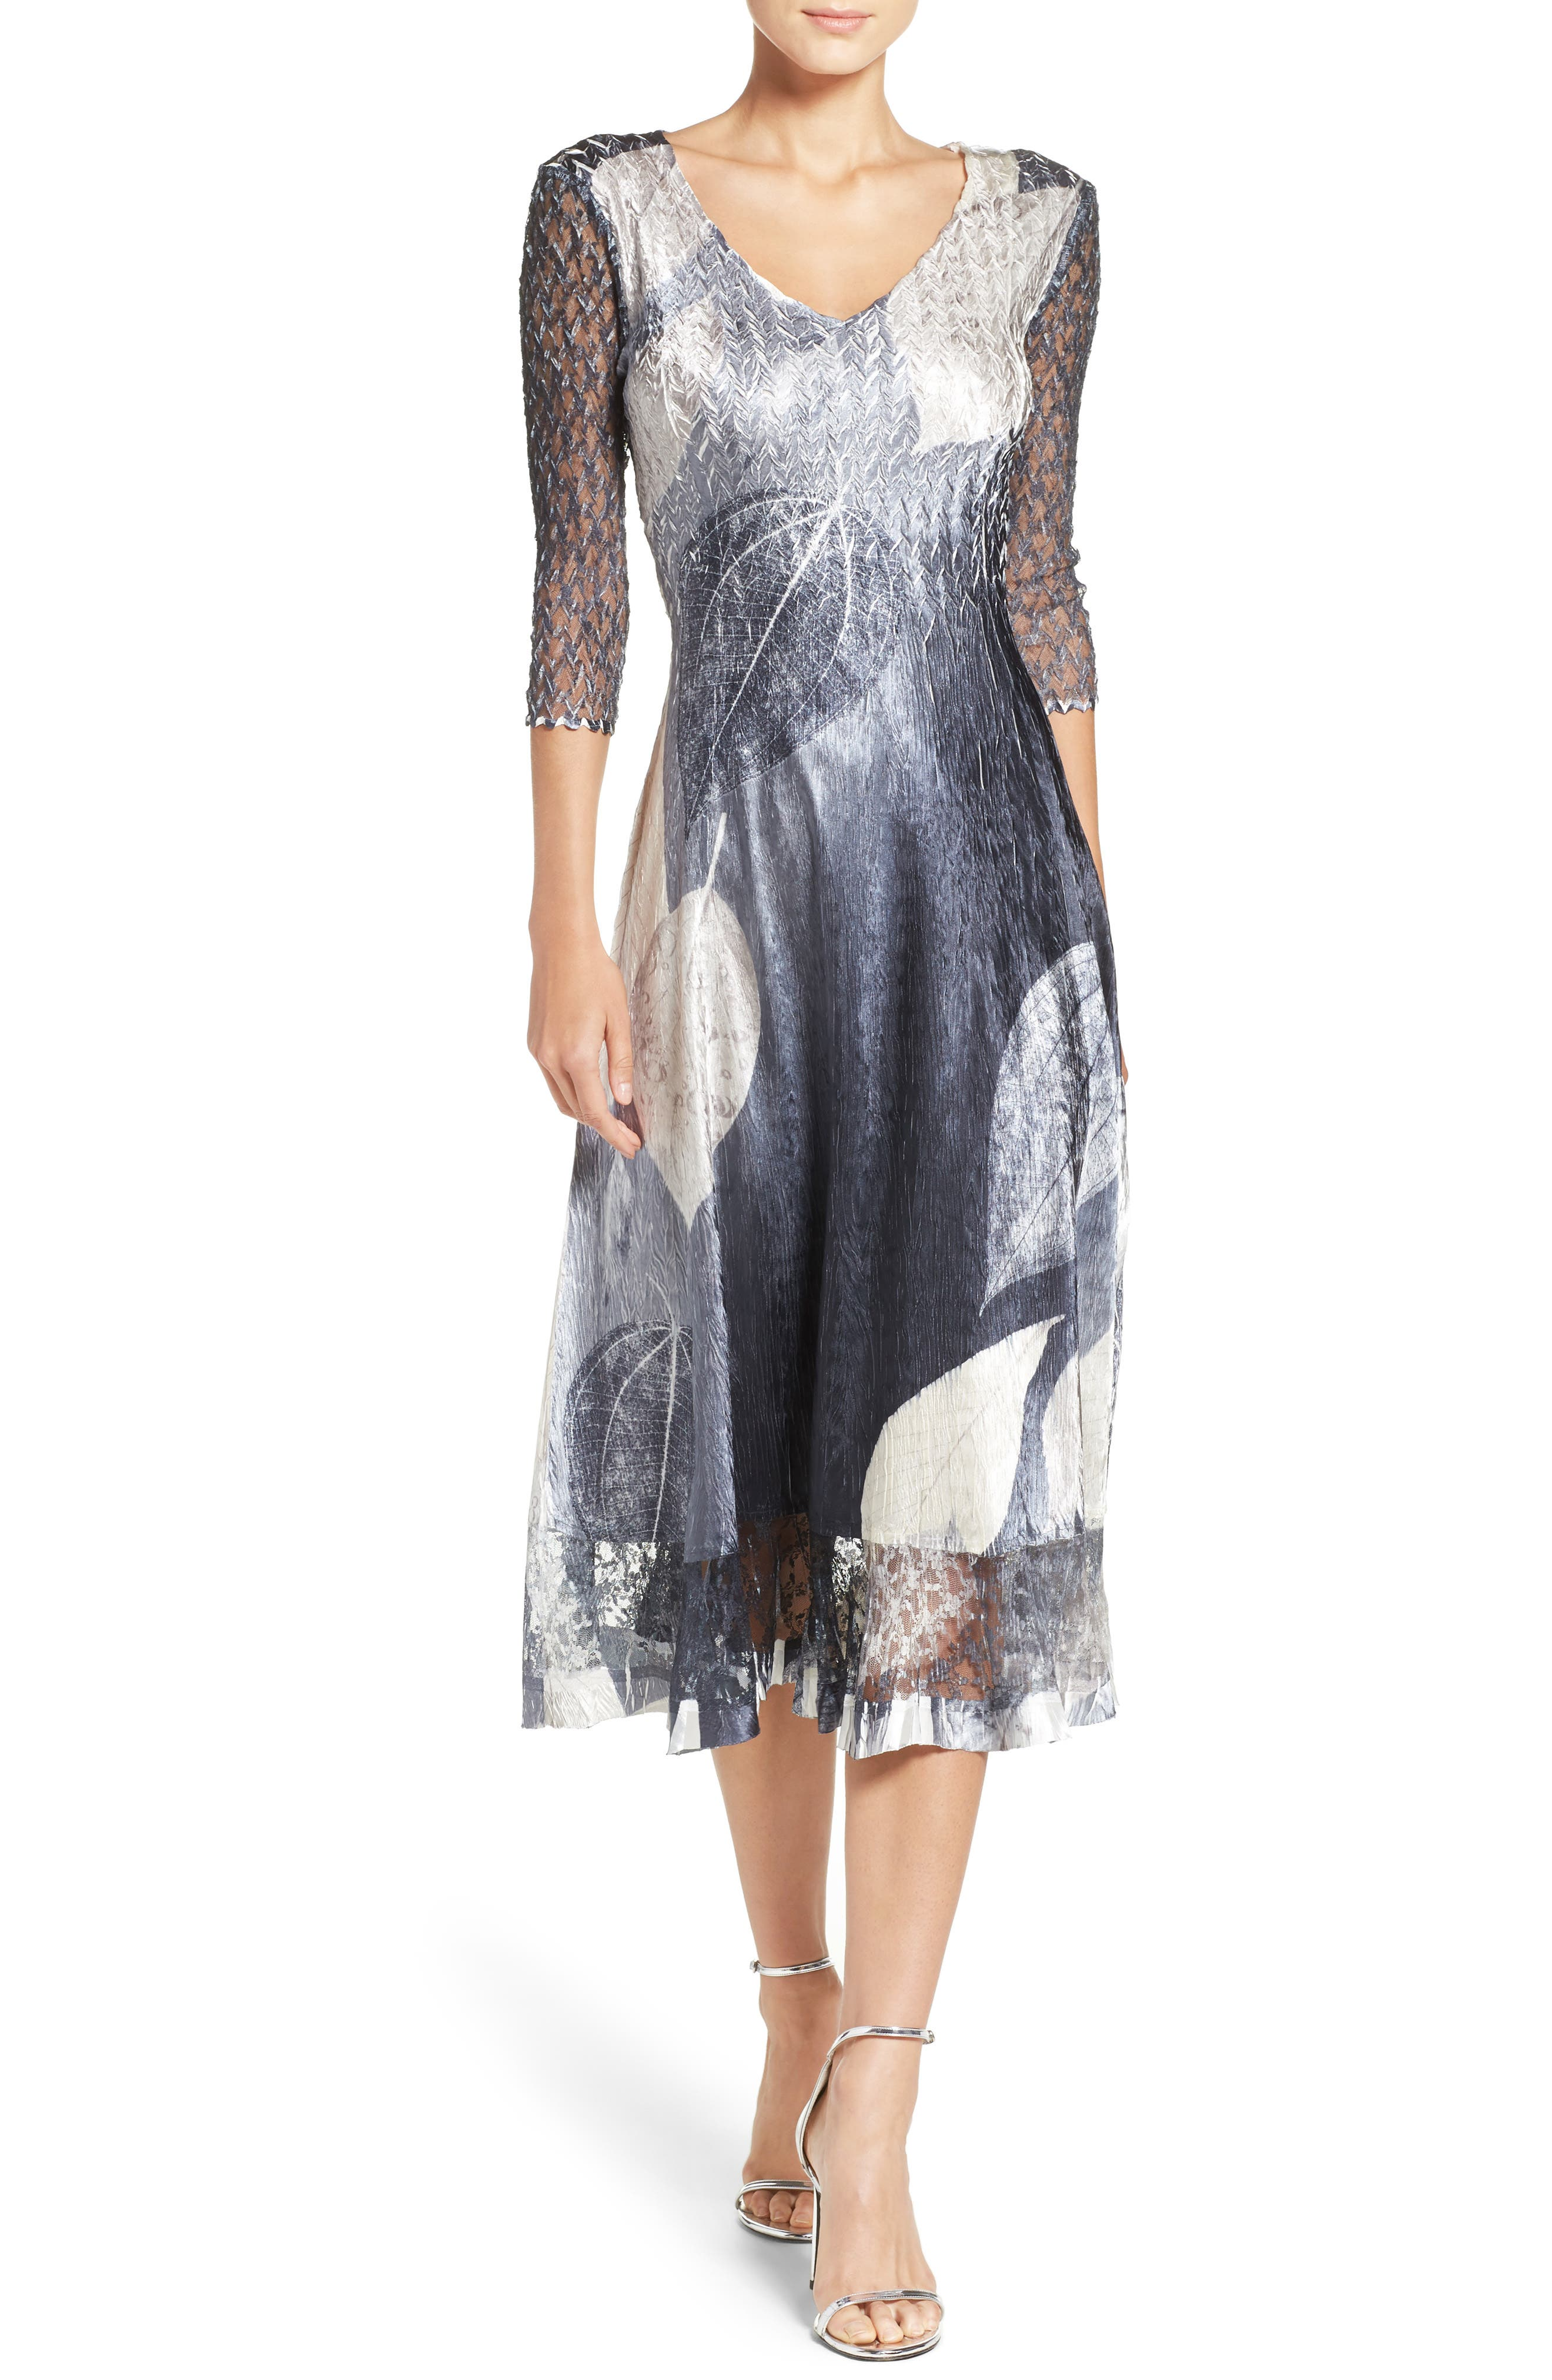 KOMAROV Charmeuse & Lace A-Line Dress, Main, color, BLACK MONET LEAVES